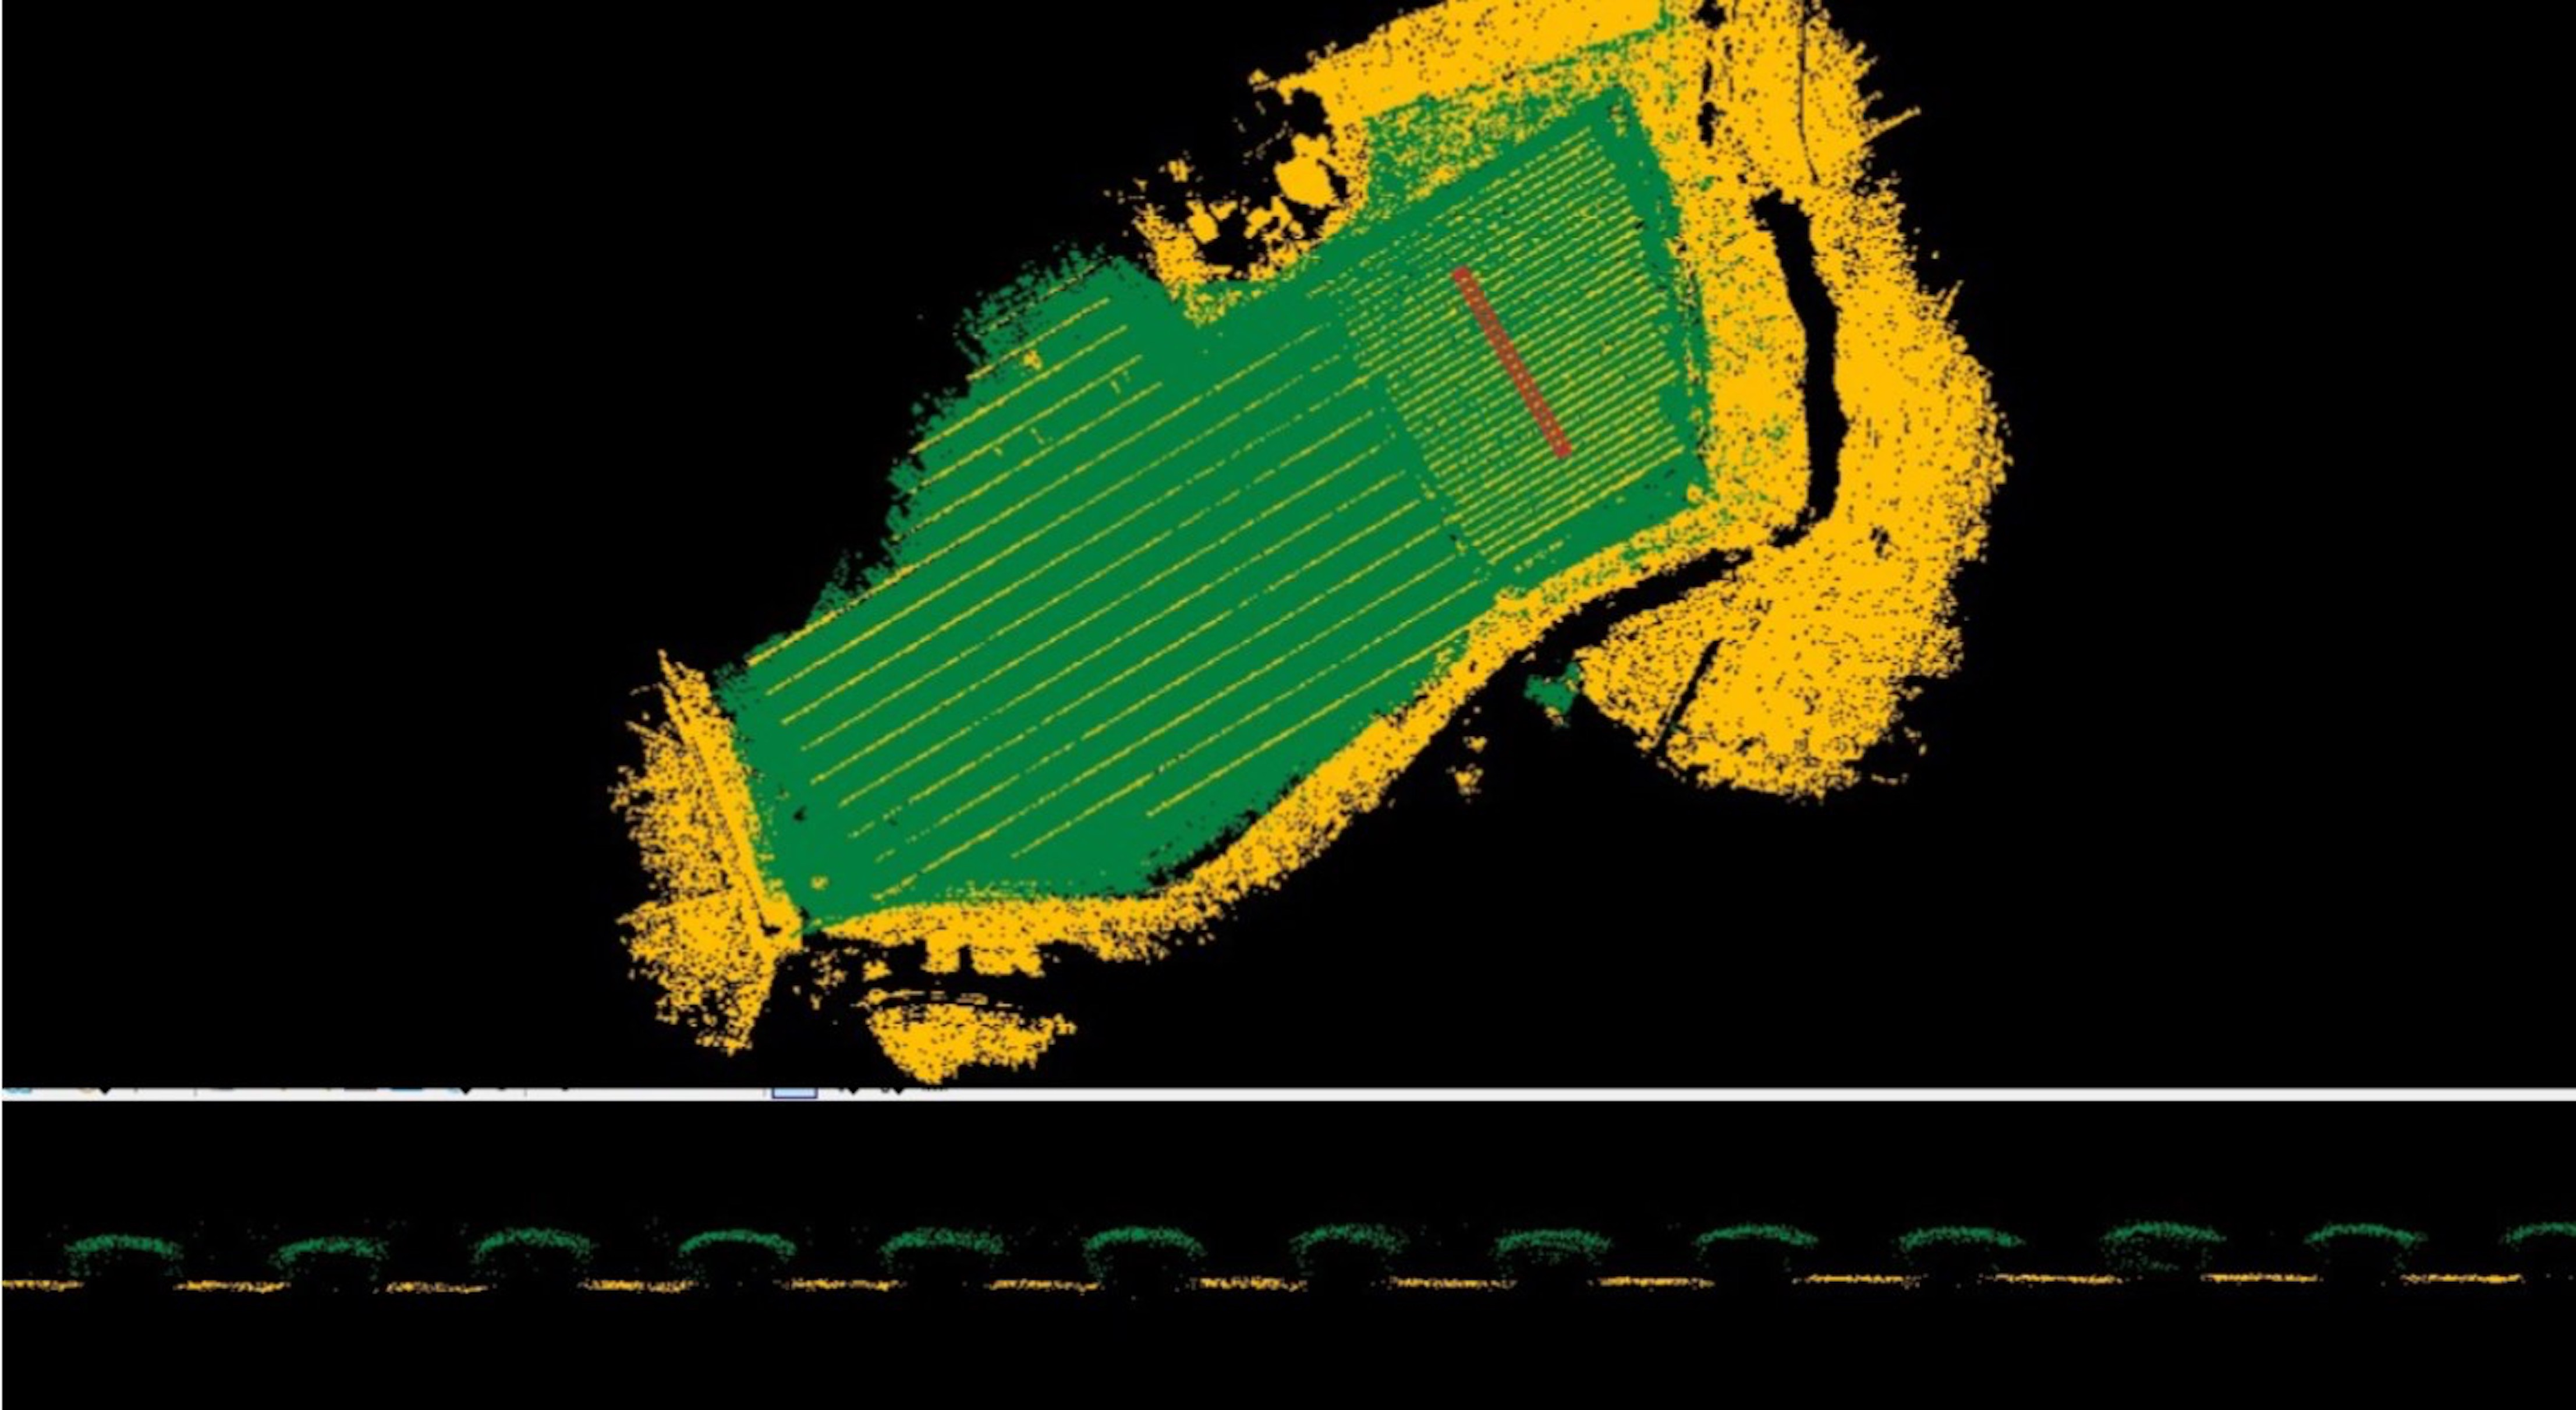 Fig. 5: Classified lidar for crop analytics (top) and profile view of crops from indicated are (red profile line in top view).